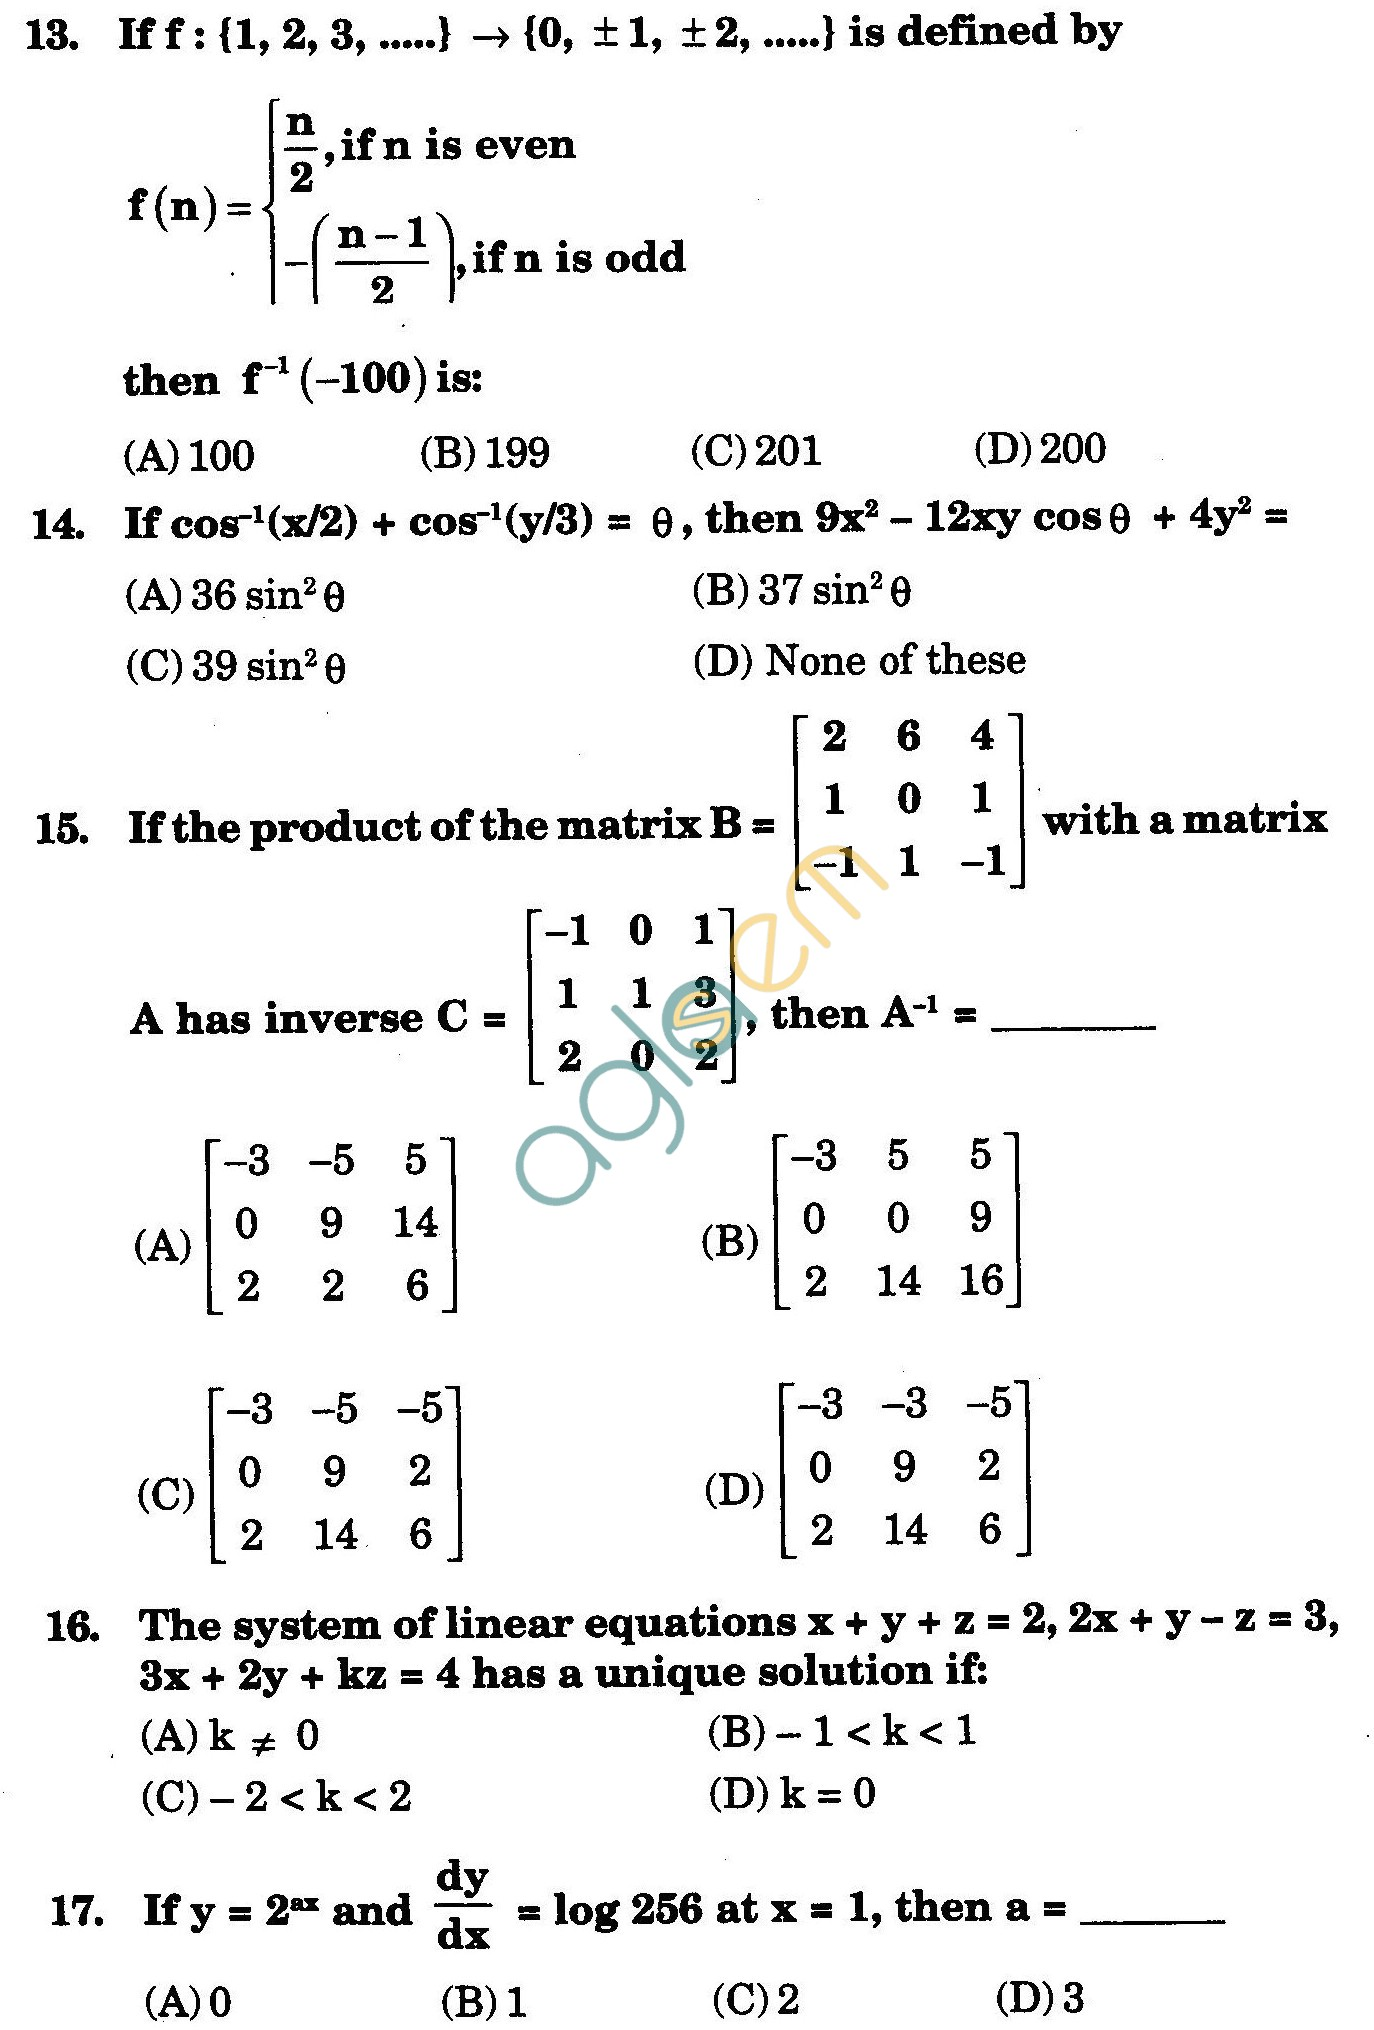 NSTSE 2010 Class XII PCM Question Paper with Answers - Mathematics